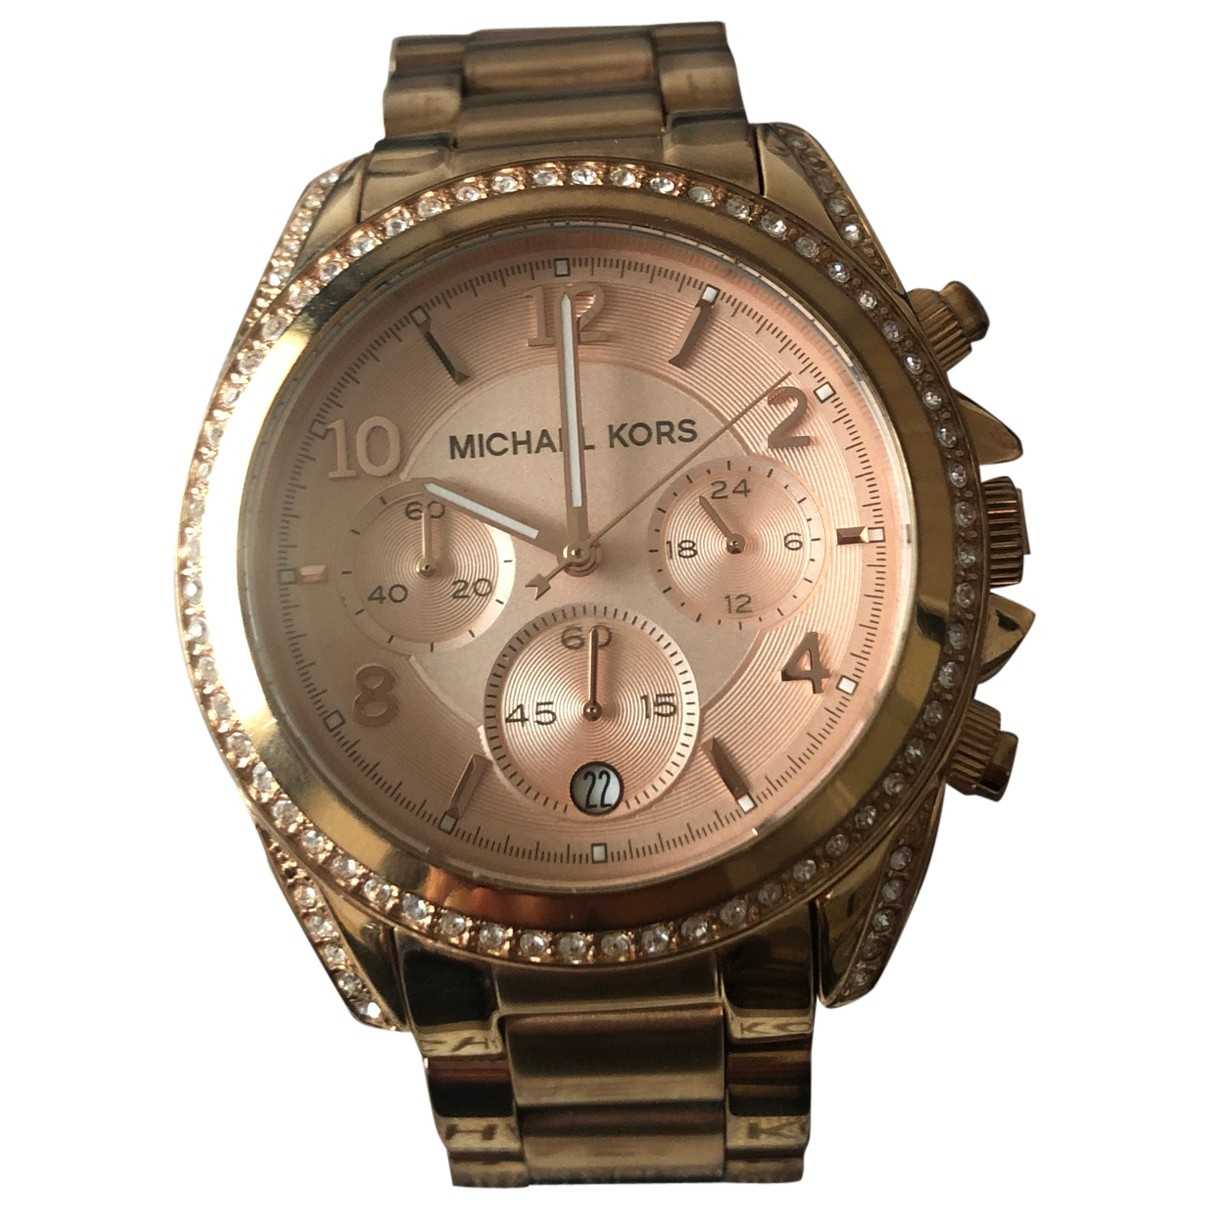 Michael Kors \N Pink Pink gold watch for Women \N